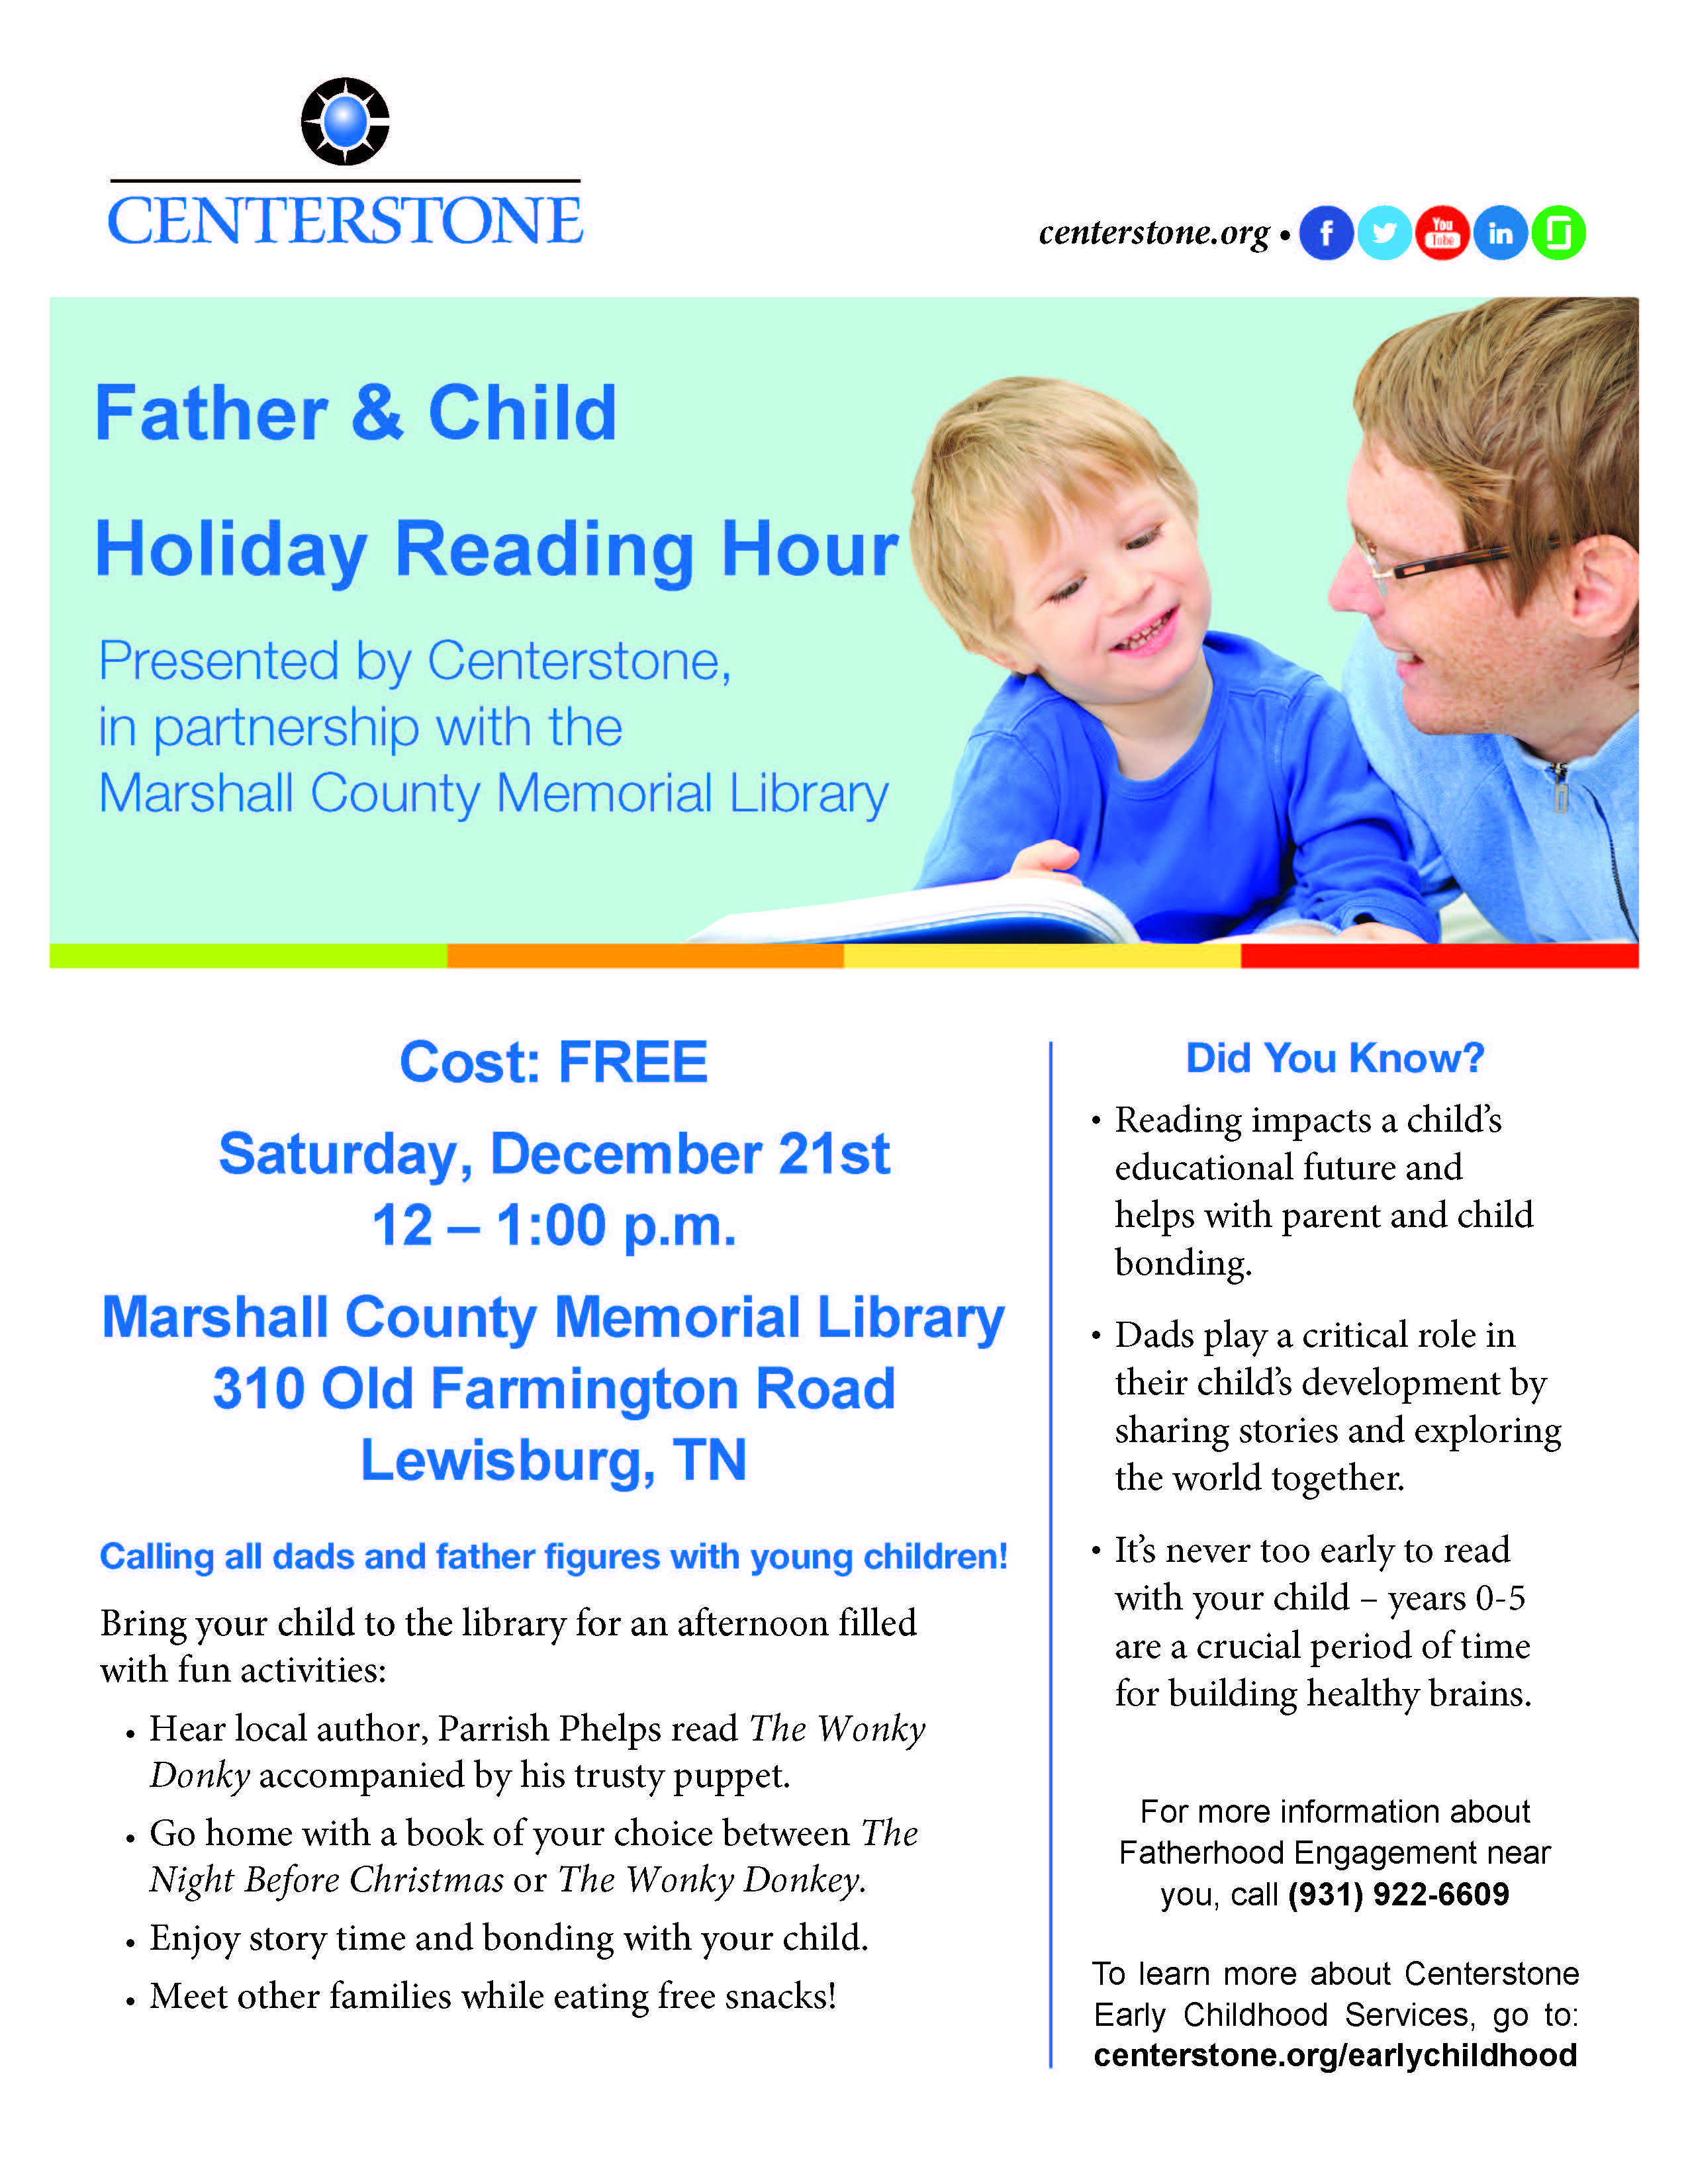 Holiday Reading Day Lewisburg